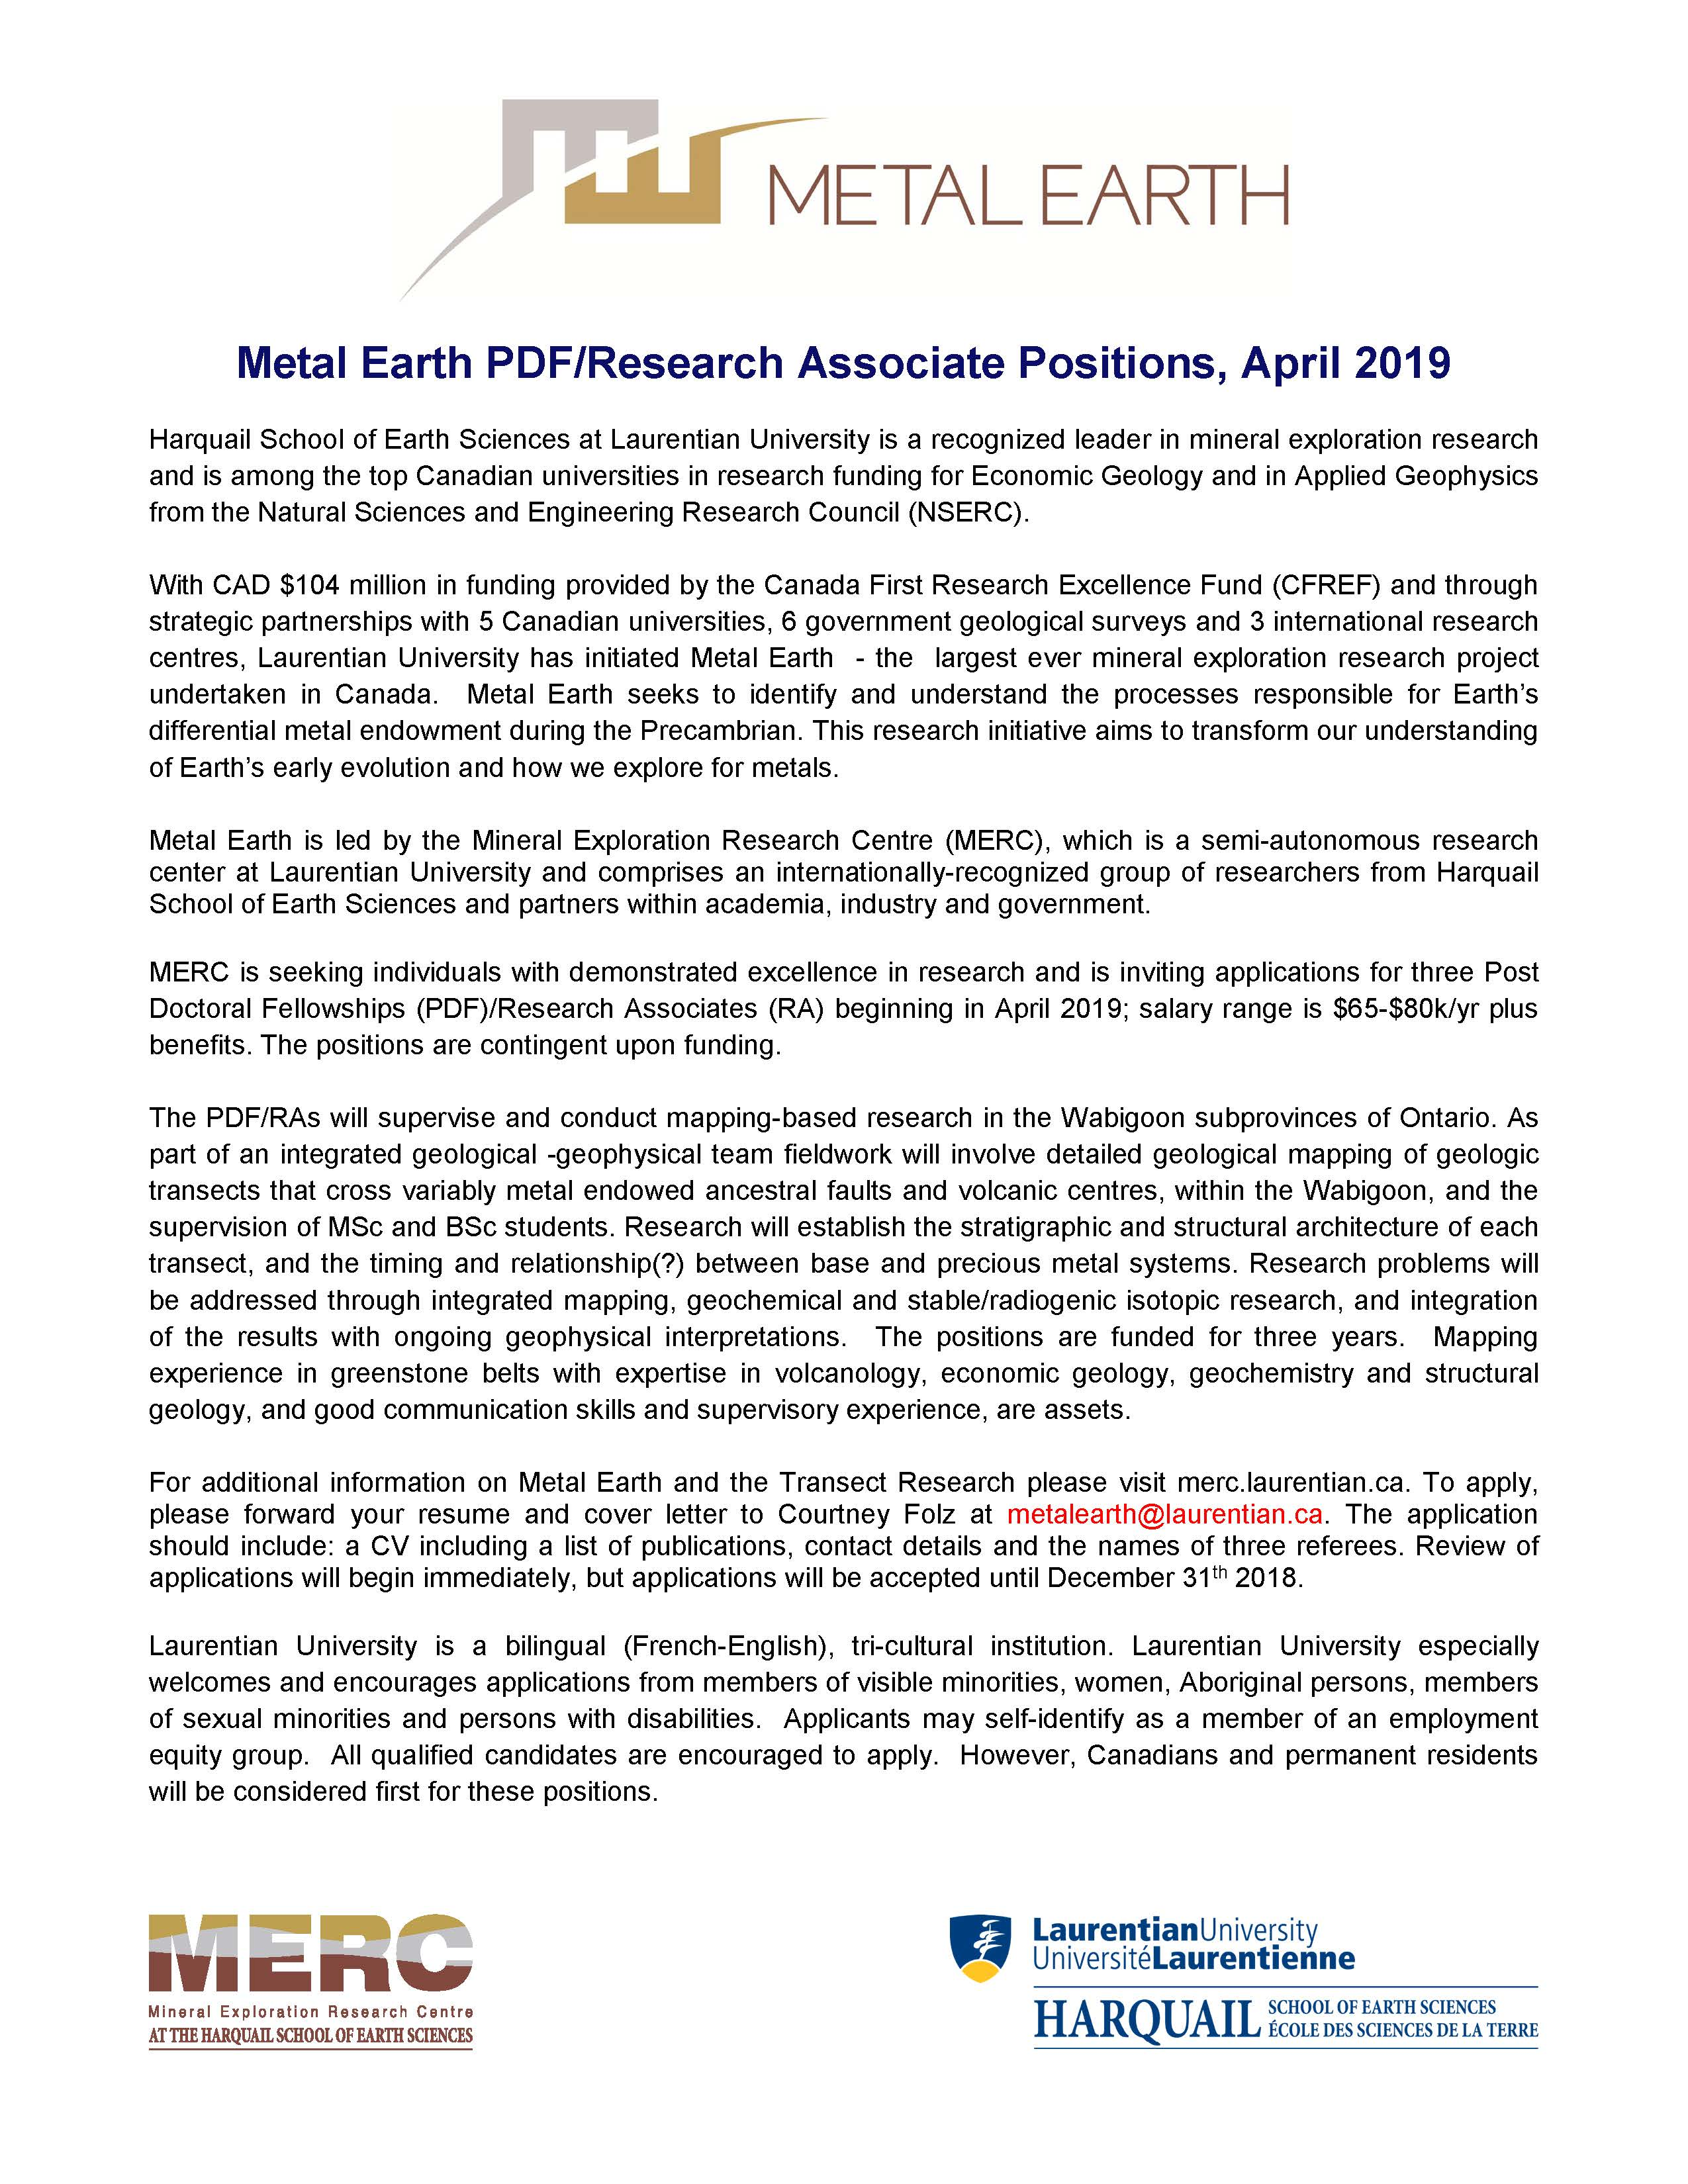 careers research opportunities harquail school of earth sciences